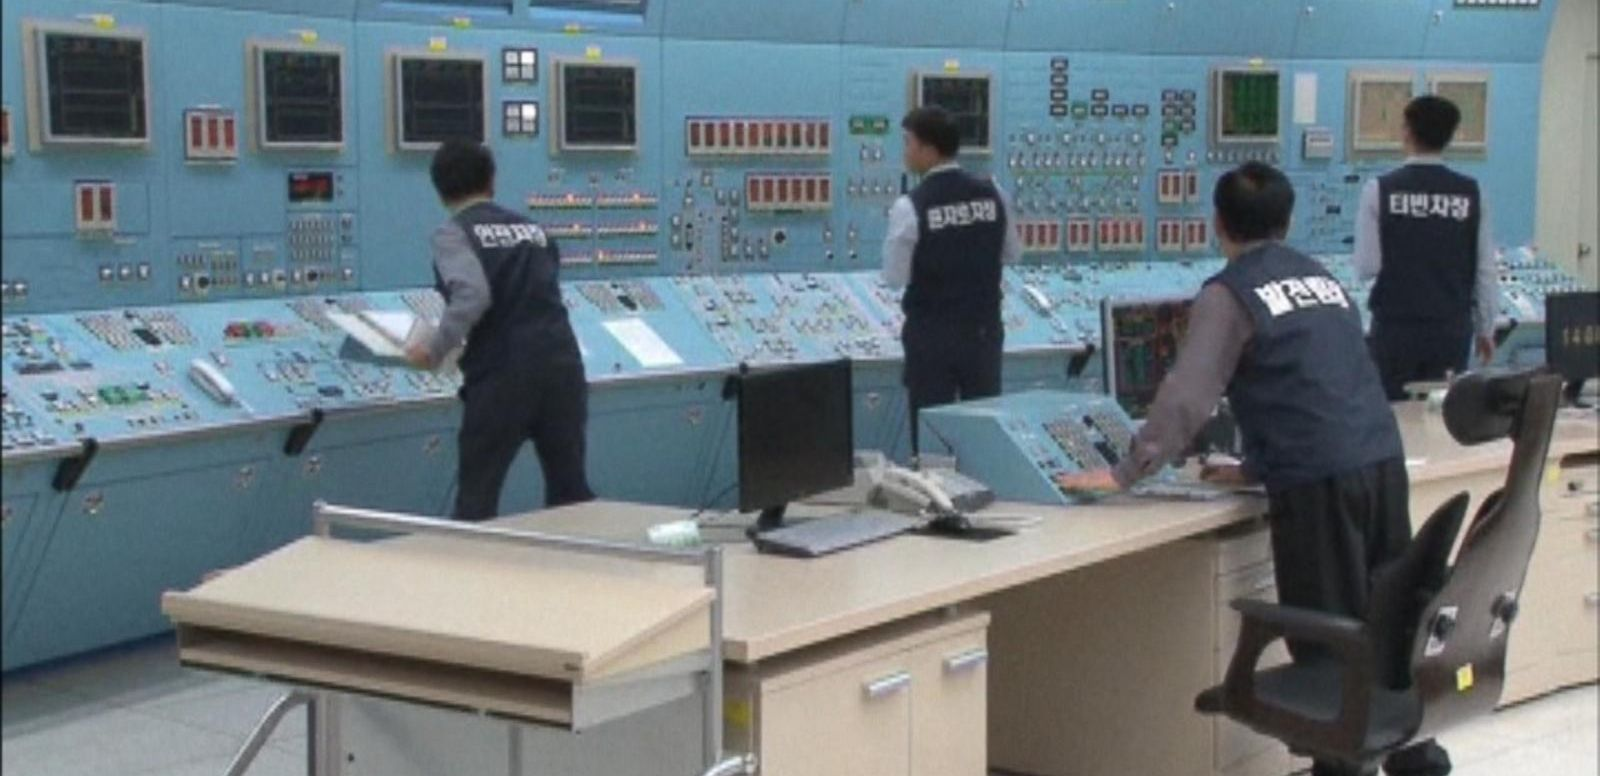 VIDEO: South Korea Nuclear Sites On Alert After Cyber Attack